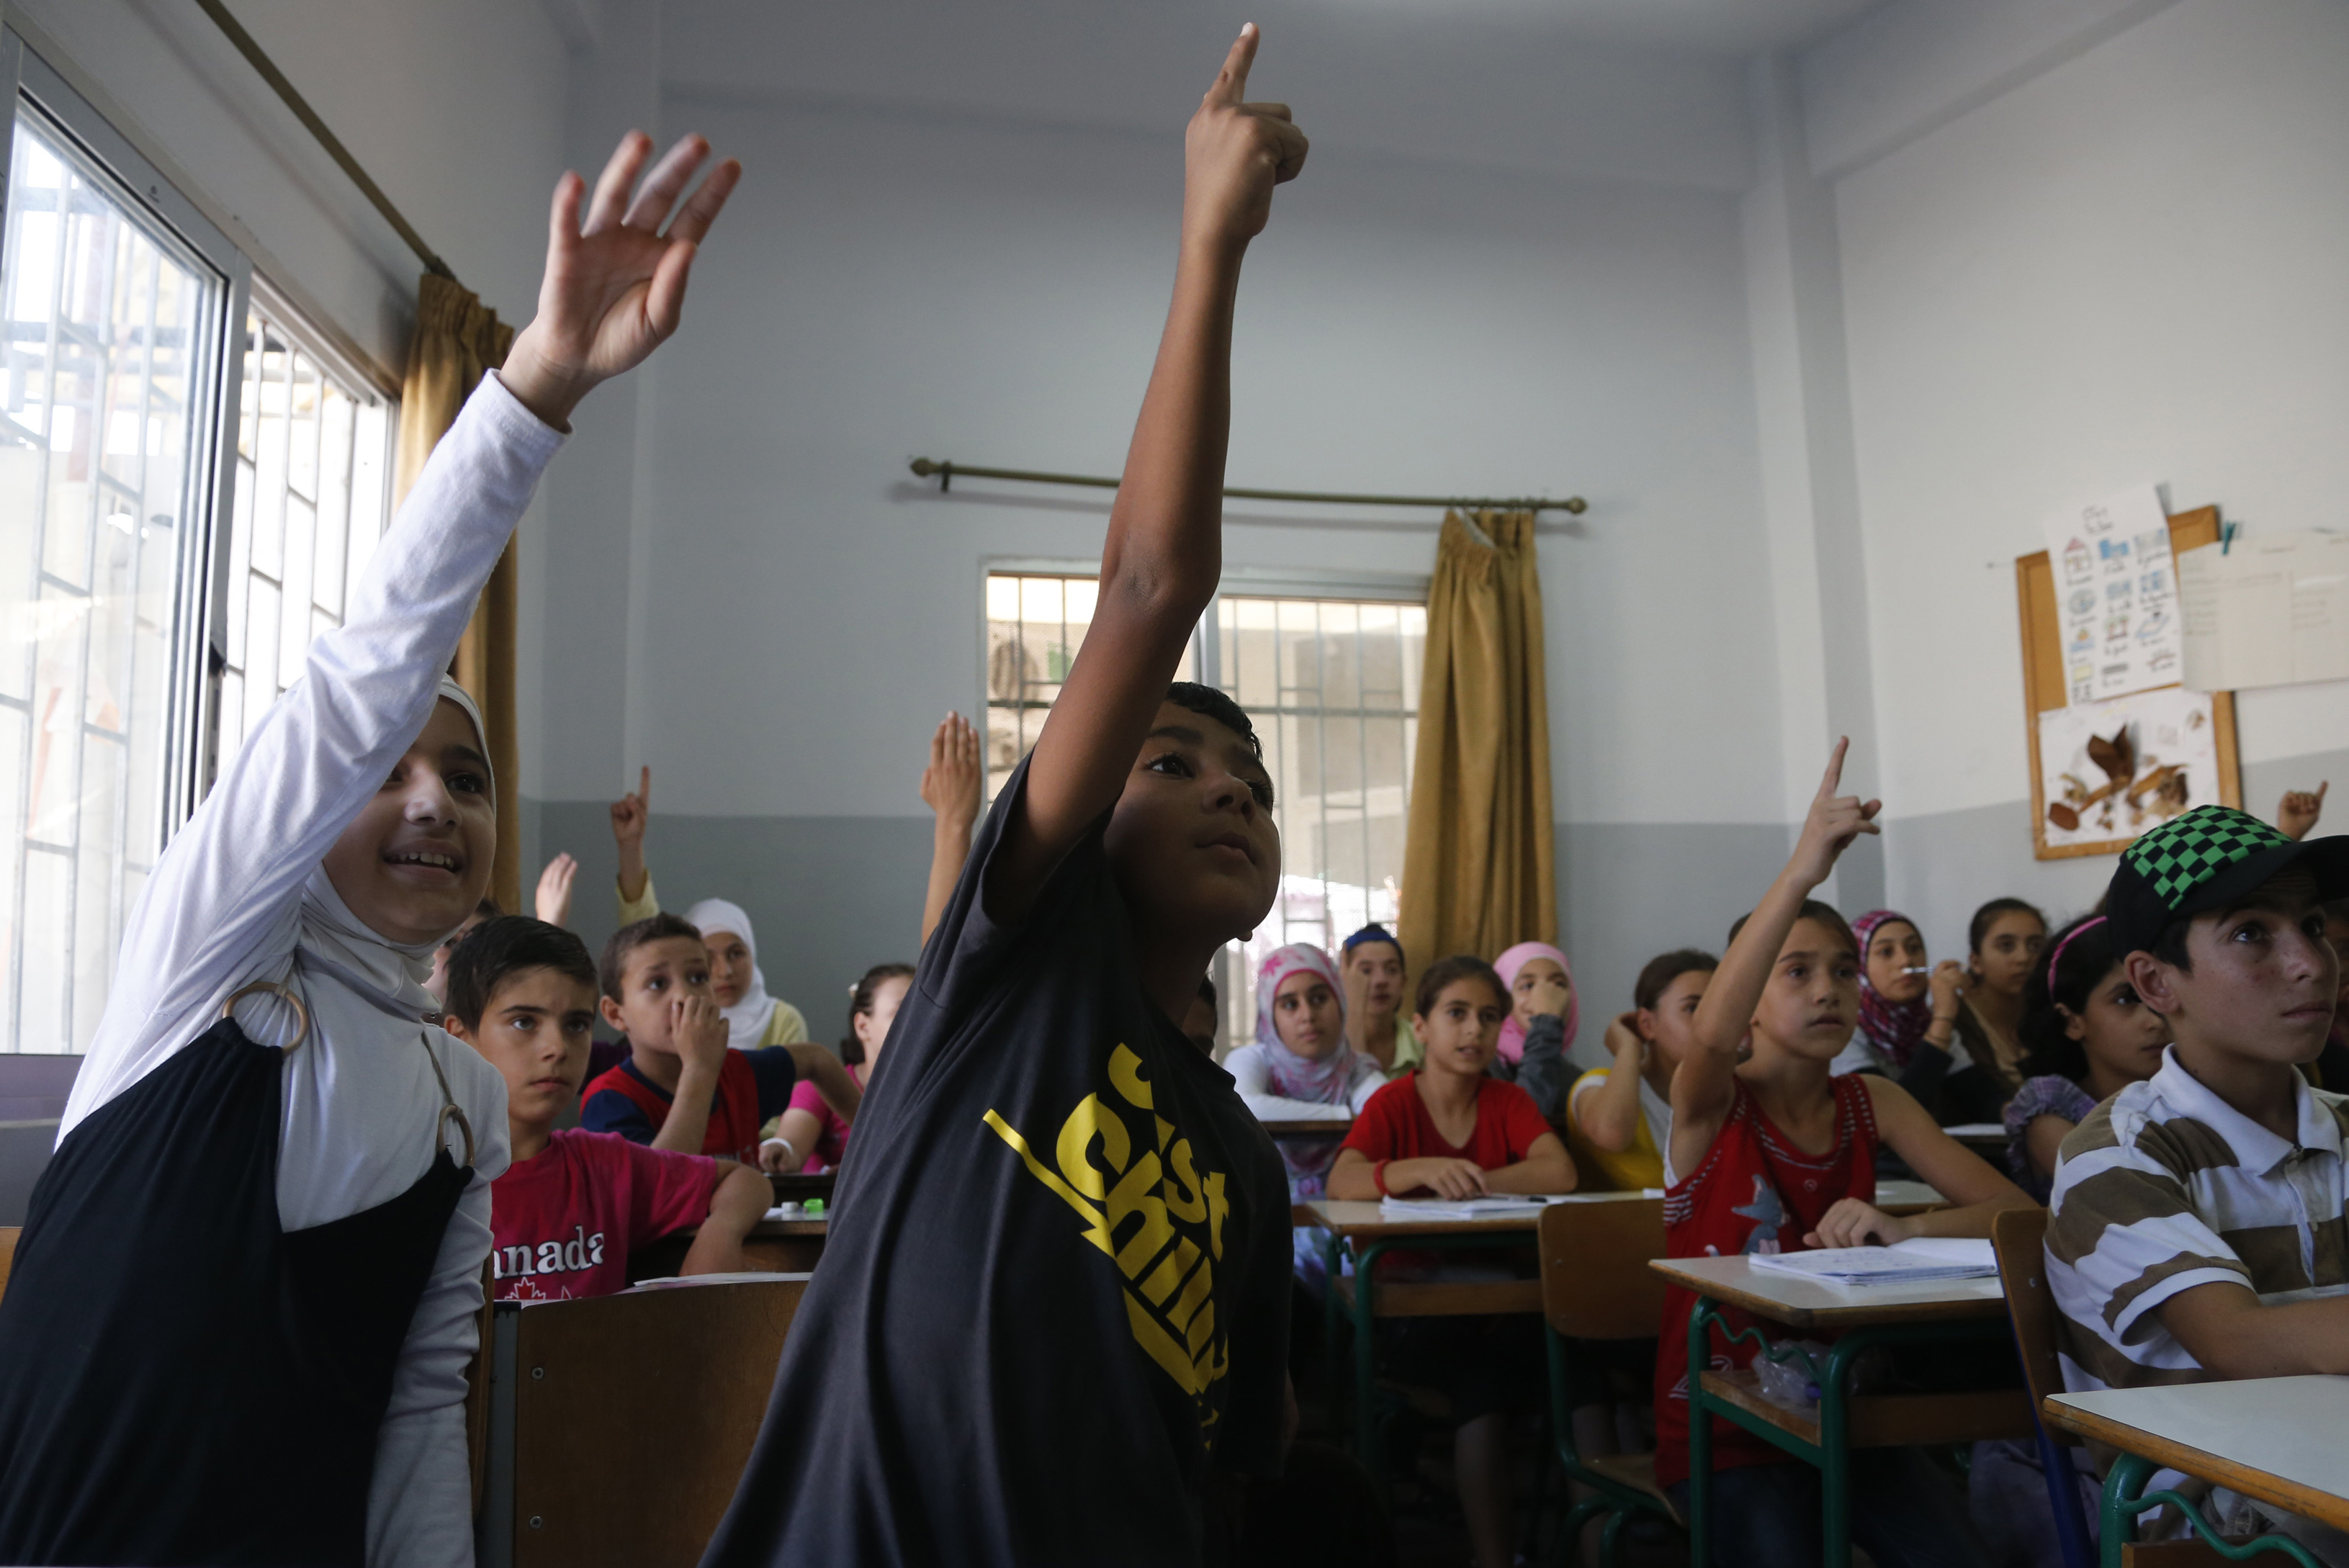 Syrian refugee children attend a class in Chekka, Lebanon on July 29. An estimated one million Syrians, including refugees, laborers and their families, currently live in Lebanon, twice the number that were in the country in April.